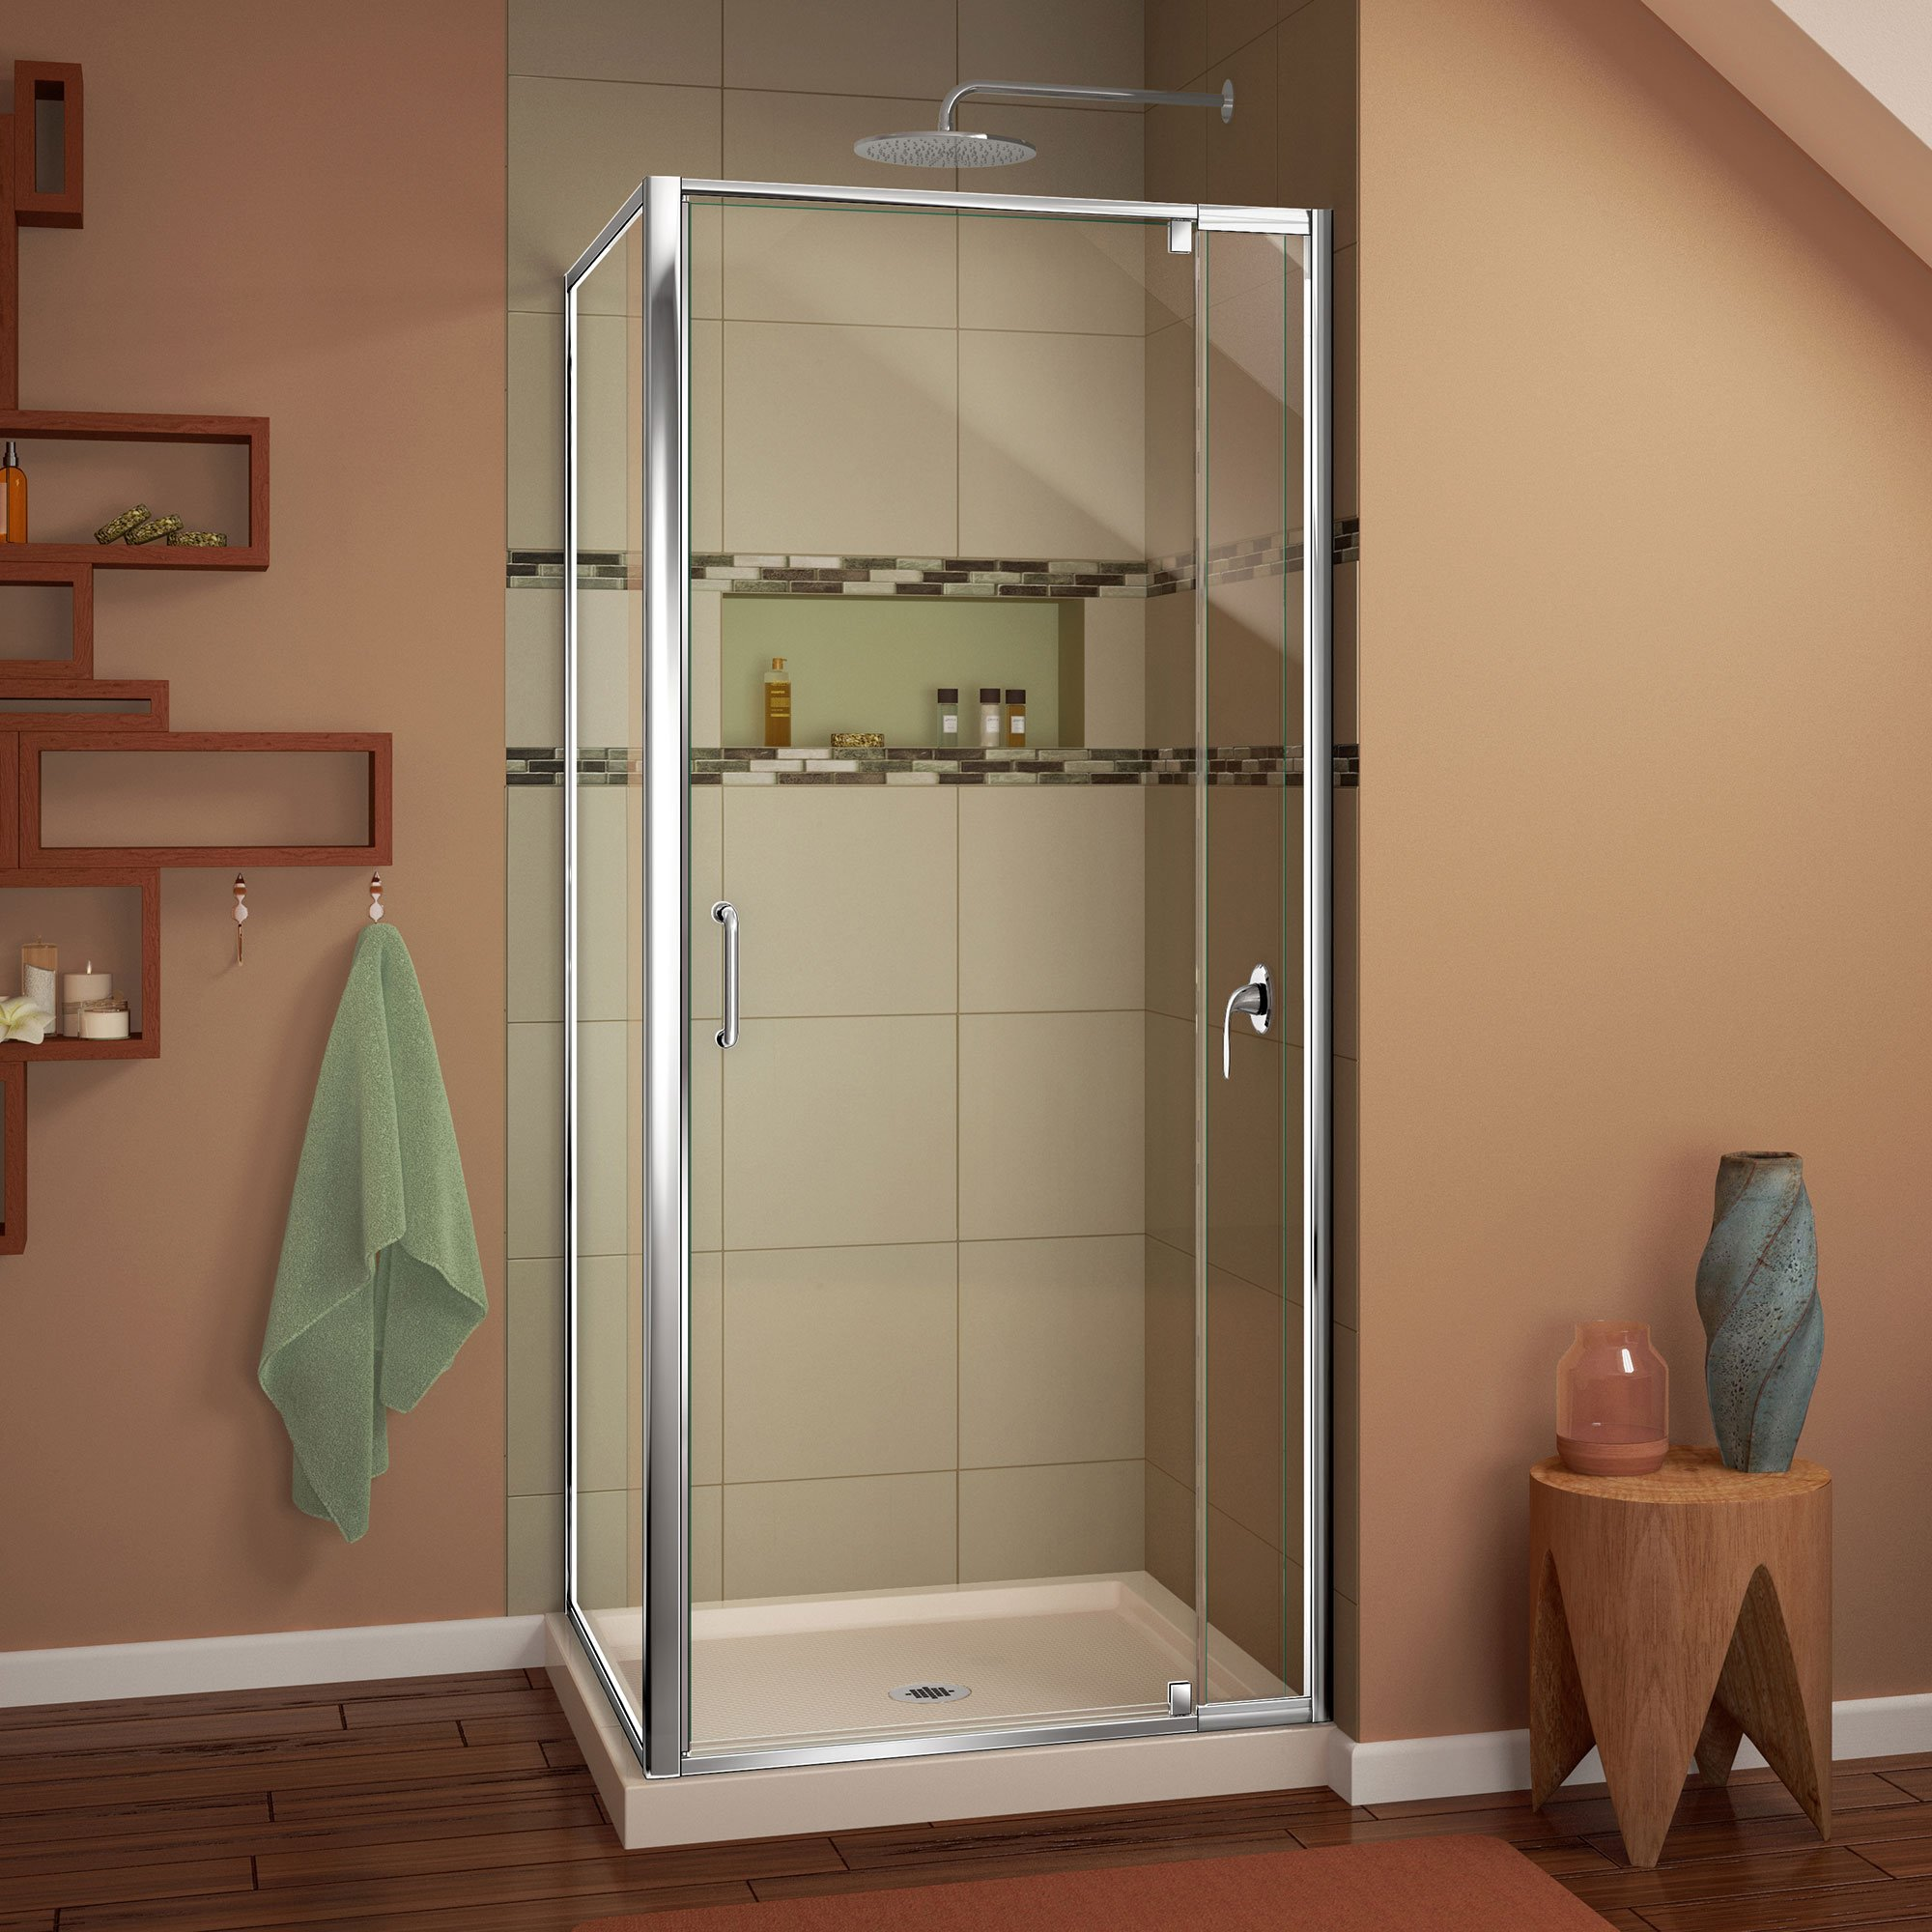 DreamLine DL-6714-22-01CL Flex 32'' W x 32'' D x 74-3/4'' H Frameless Shower Enclosure and Biscuit Shower Base with Chrome Finish Hardware